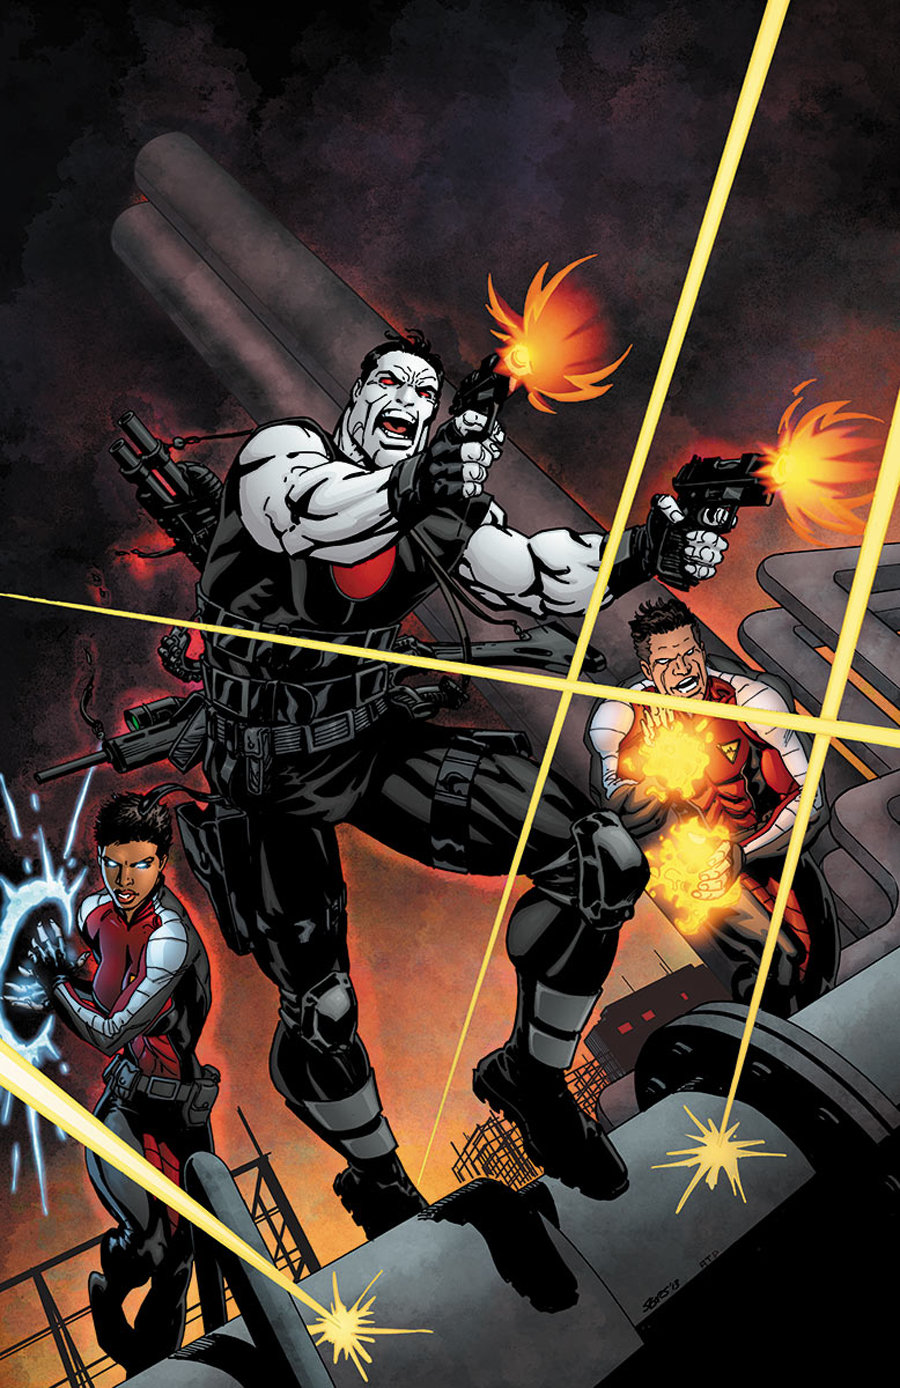 BLOODSHOT & HARD CORPS #19 ORDERALL SEARS